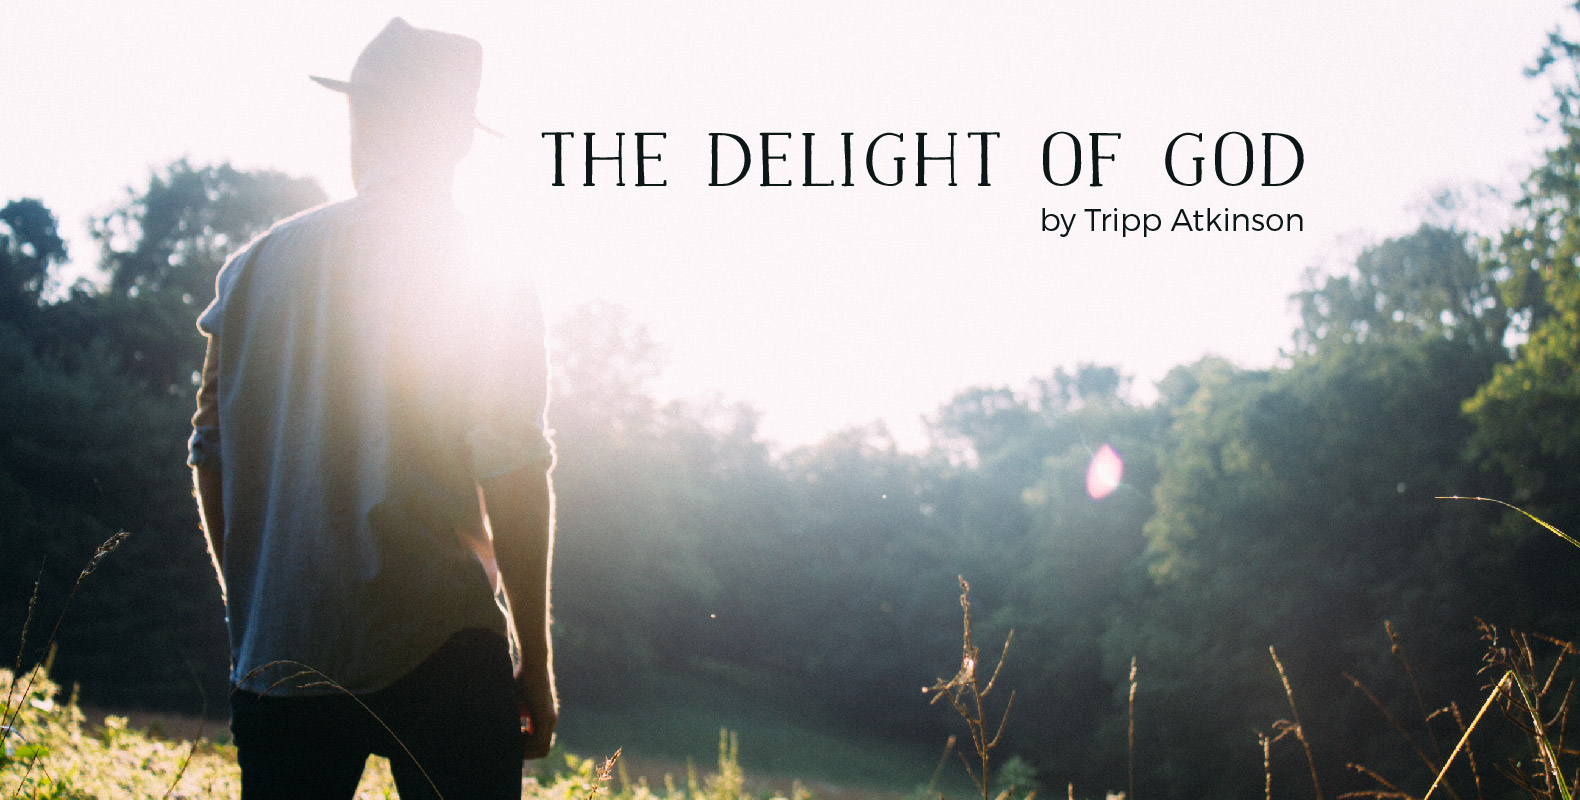 The Delight of God by Tripp Atkinson